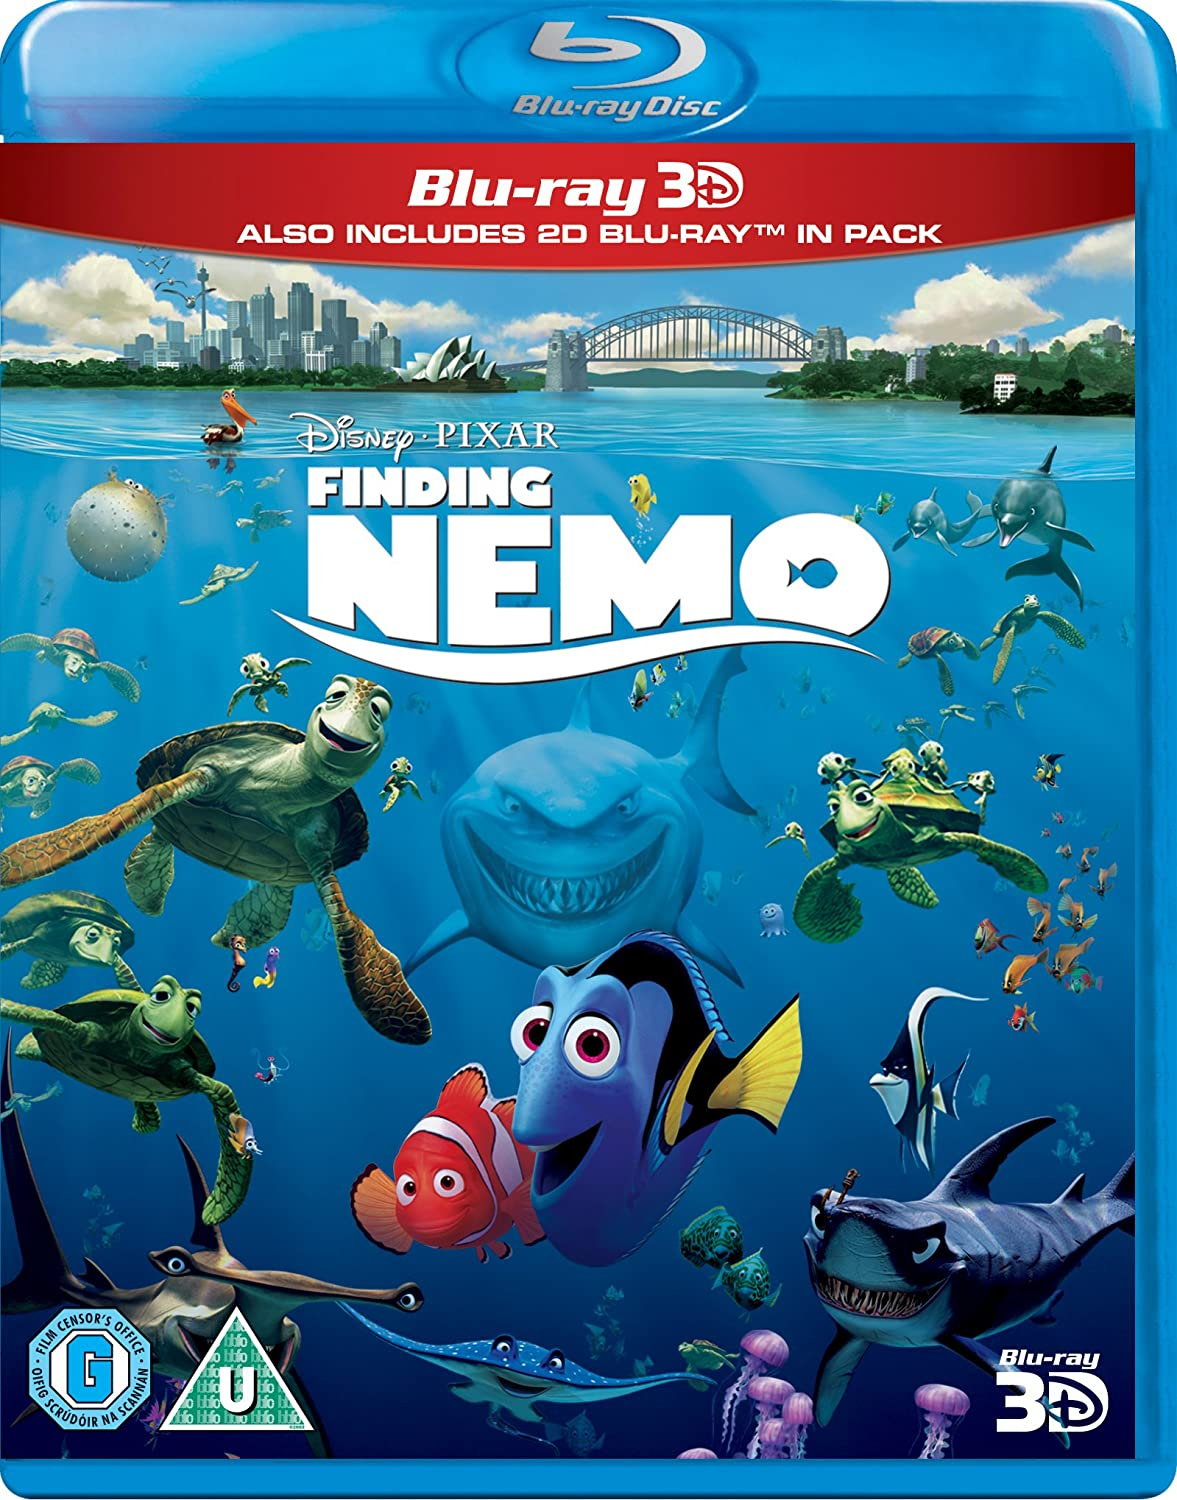 Finding Nemo [Blu-ray 3D + Blu-ray] [Region Free] [Import] MSE1175134